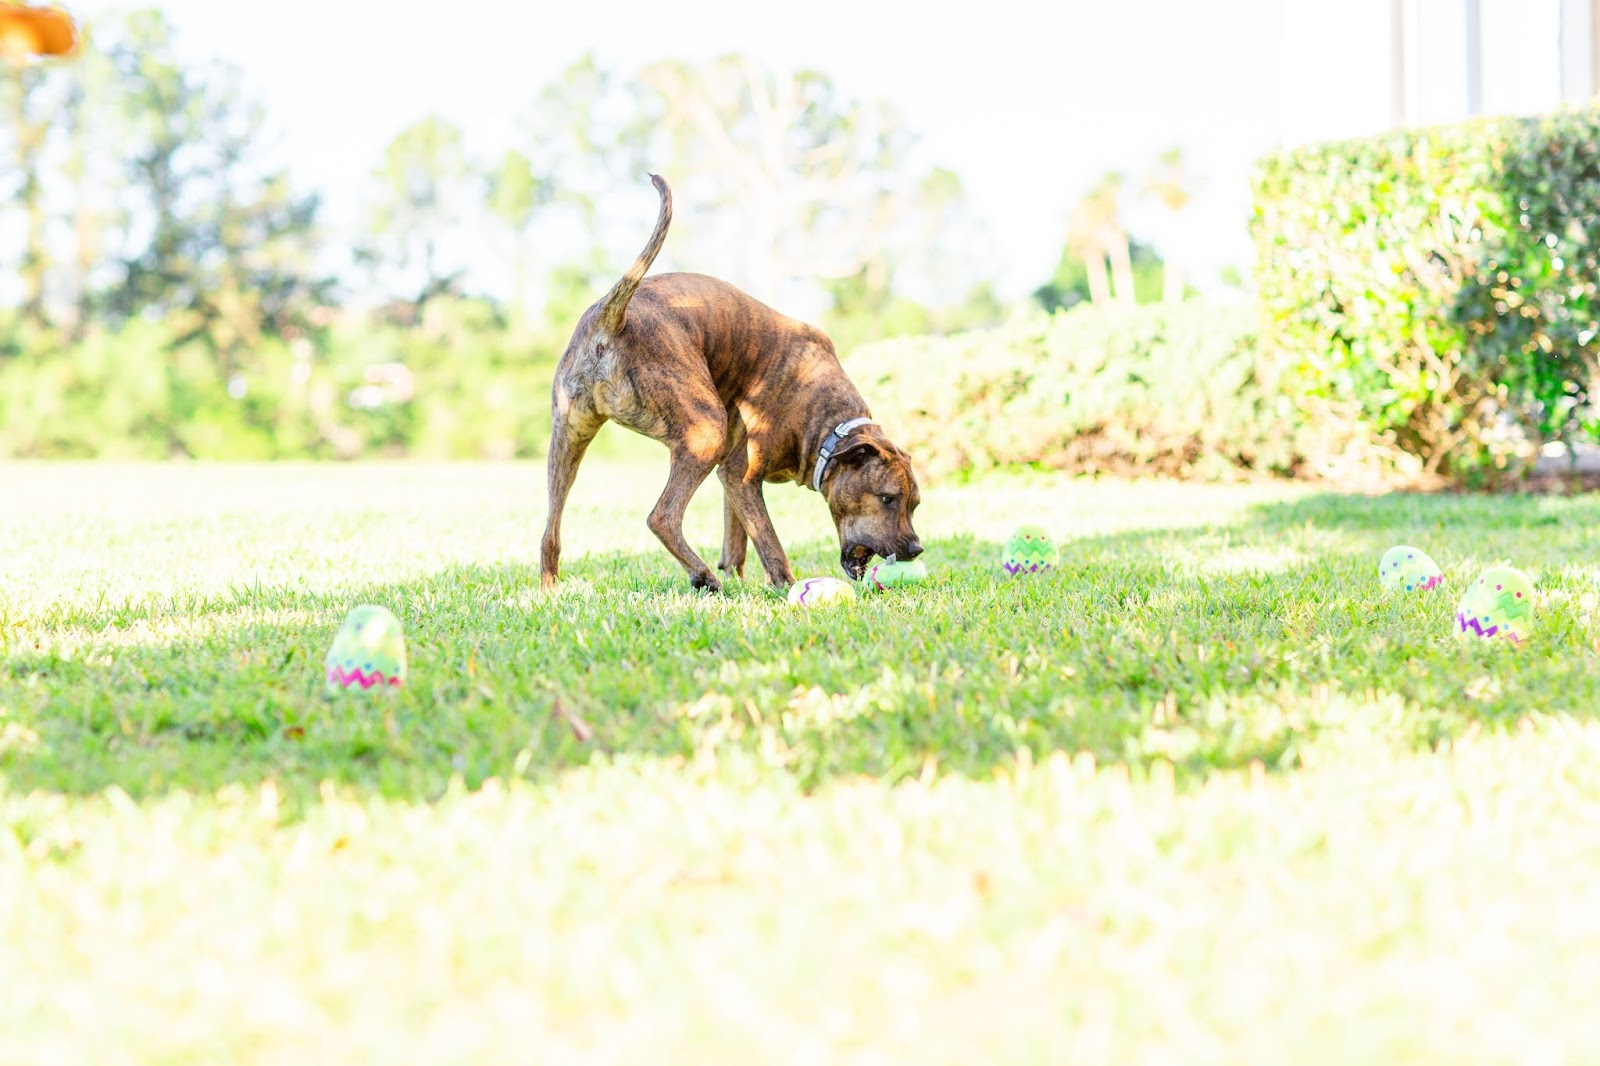 Brindle rescue dog finding a plush easter egg dog toy at his easter egg hunt in a field in florida